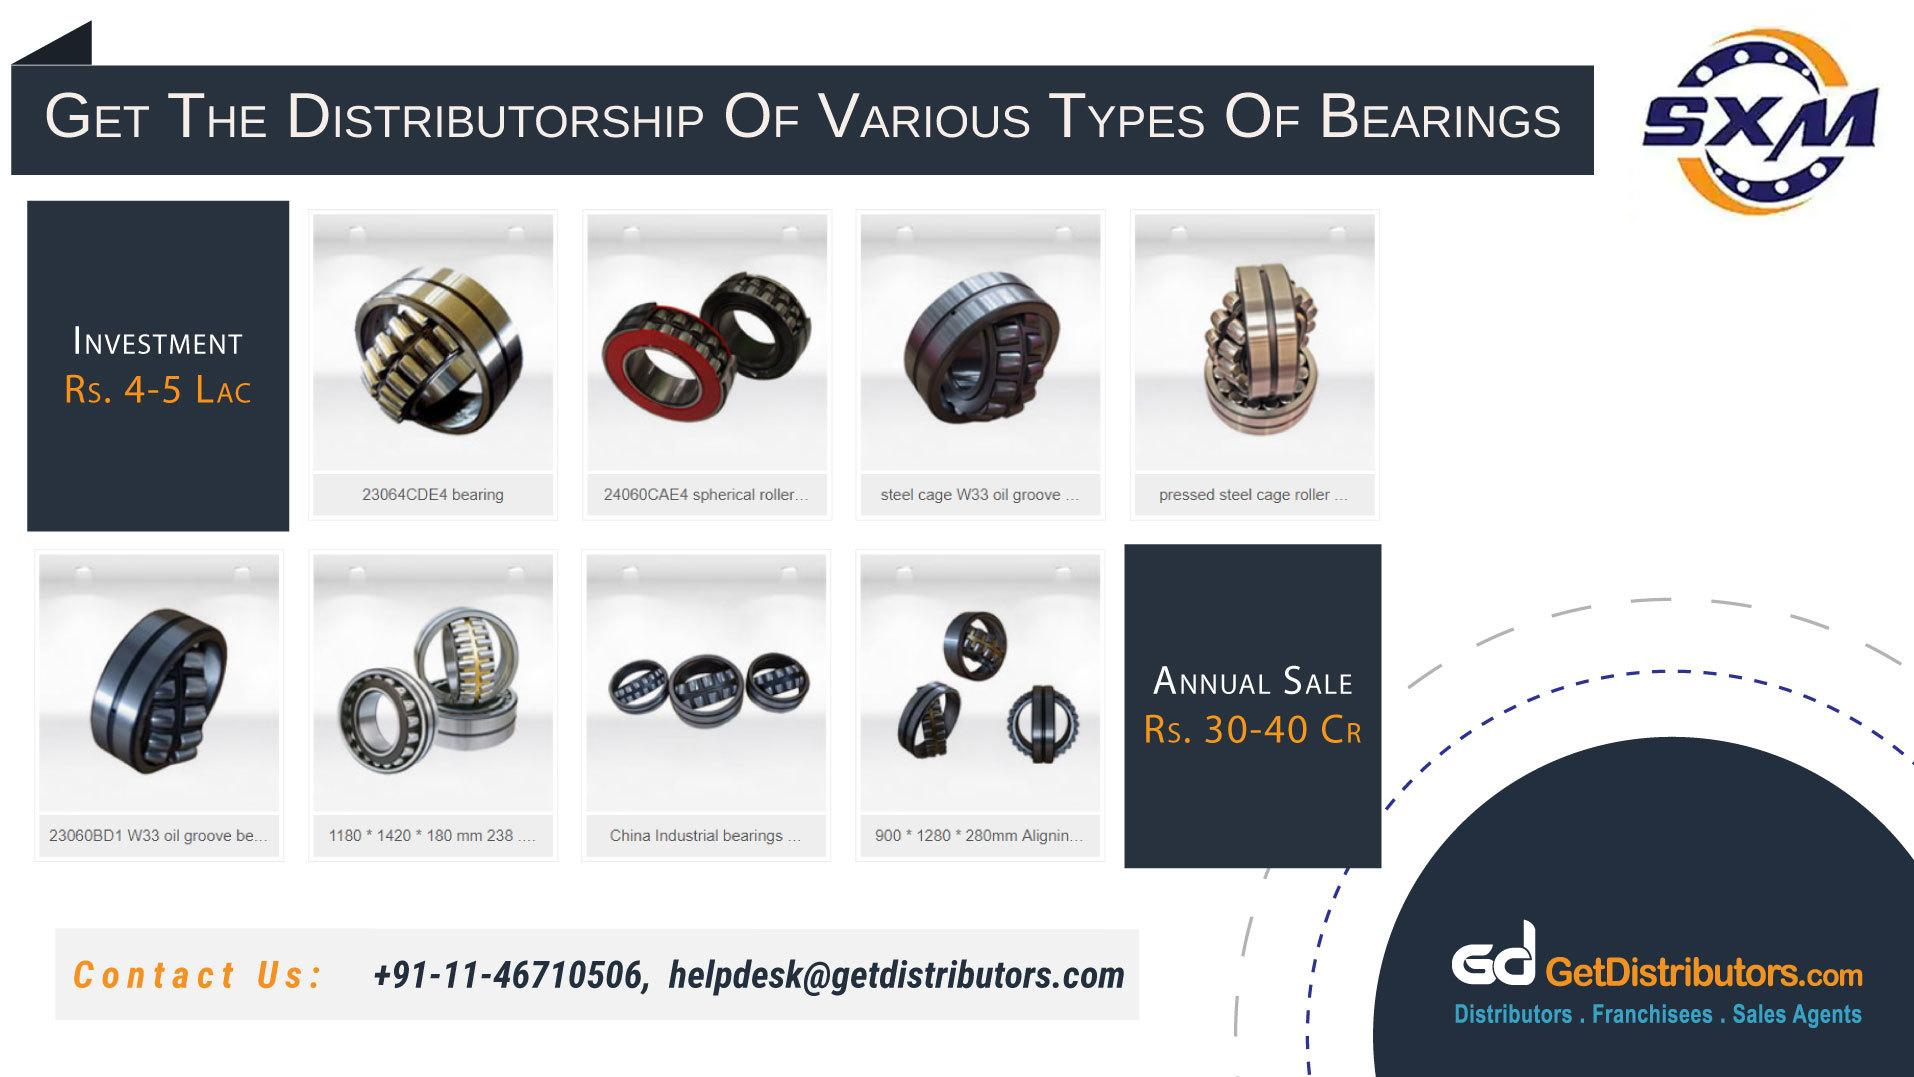 Sturdy Bearings Distributorship At Affordable Prices